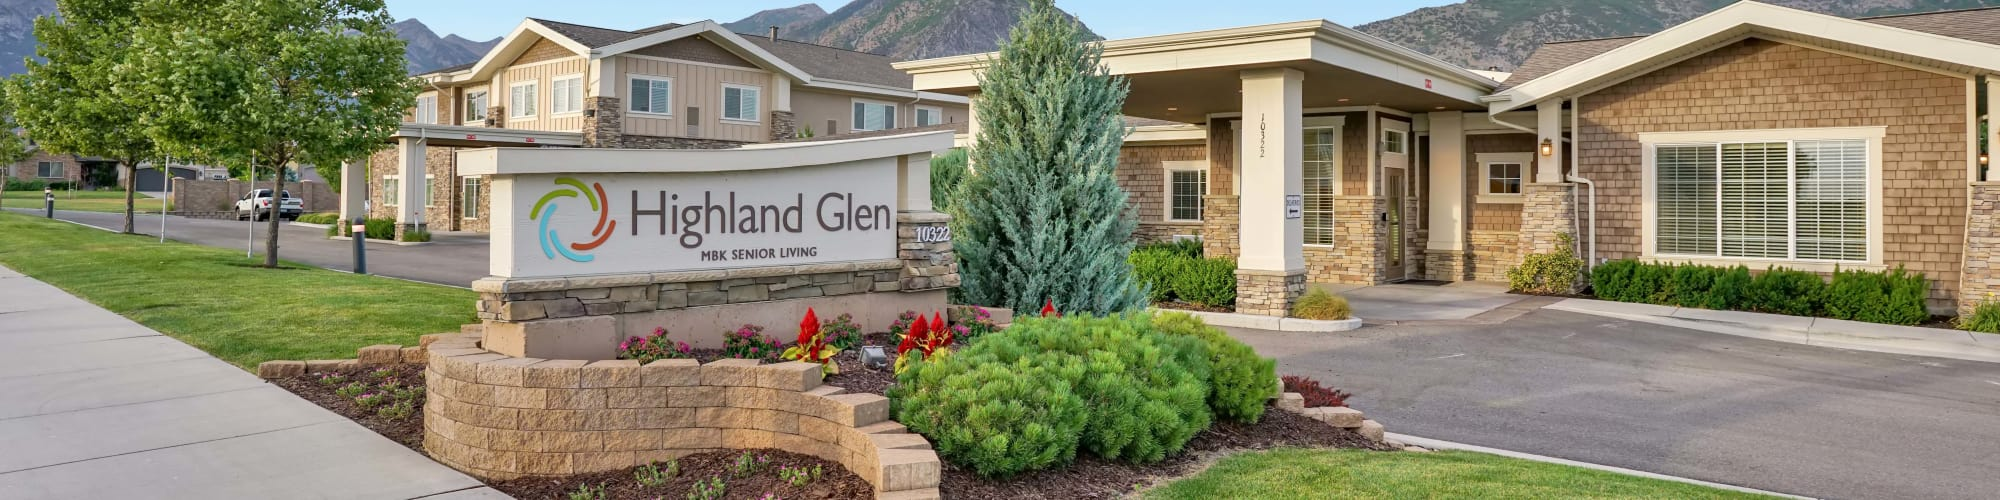 Schedule a Tour at Highland Glen in Highland, Utah